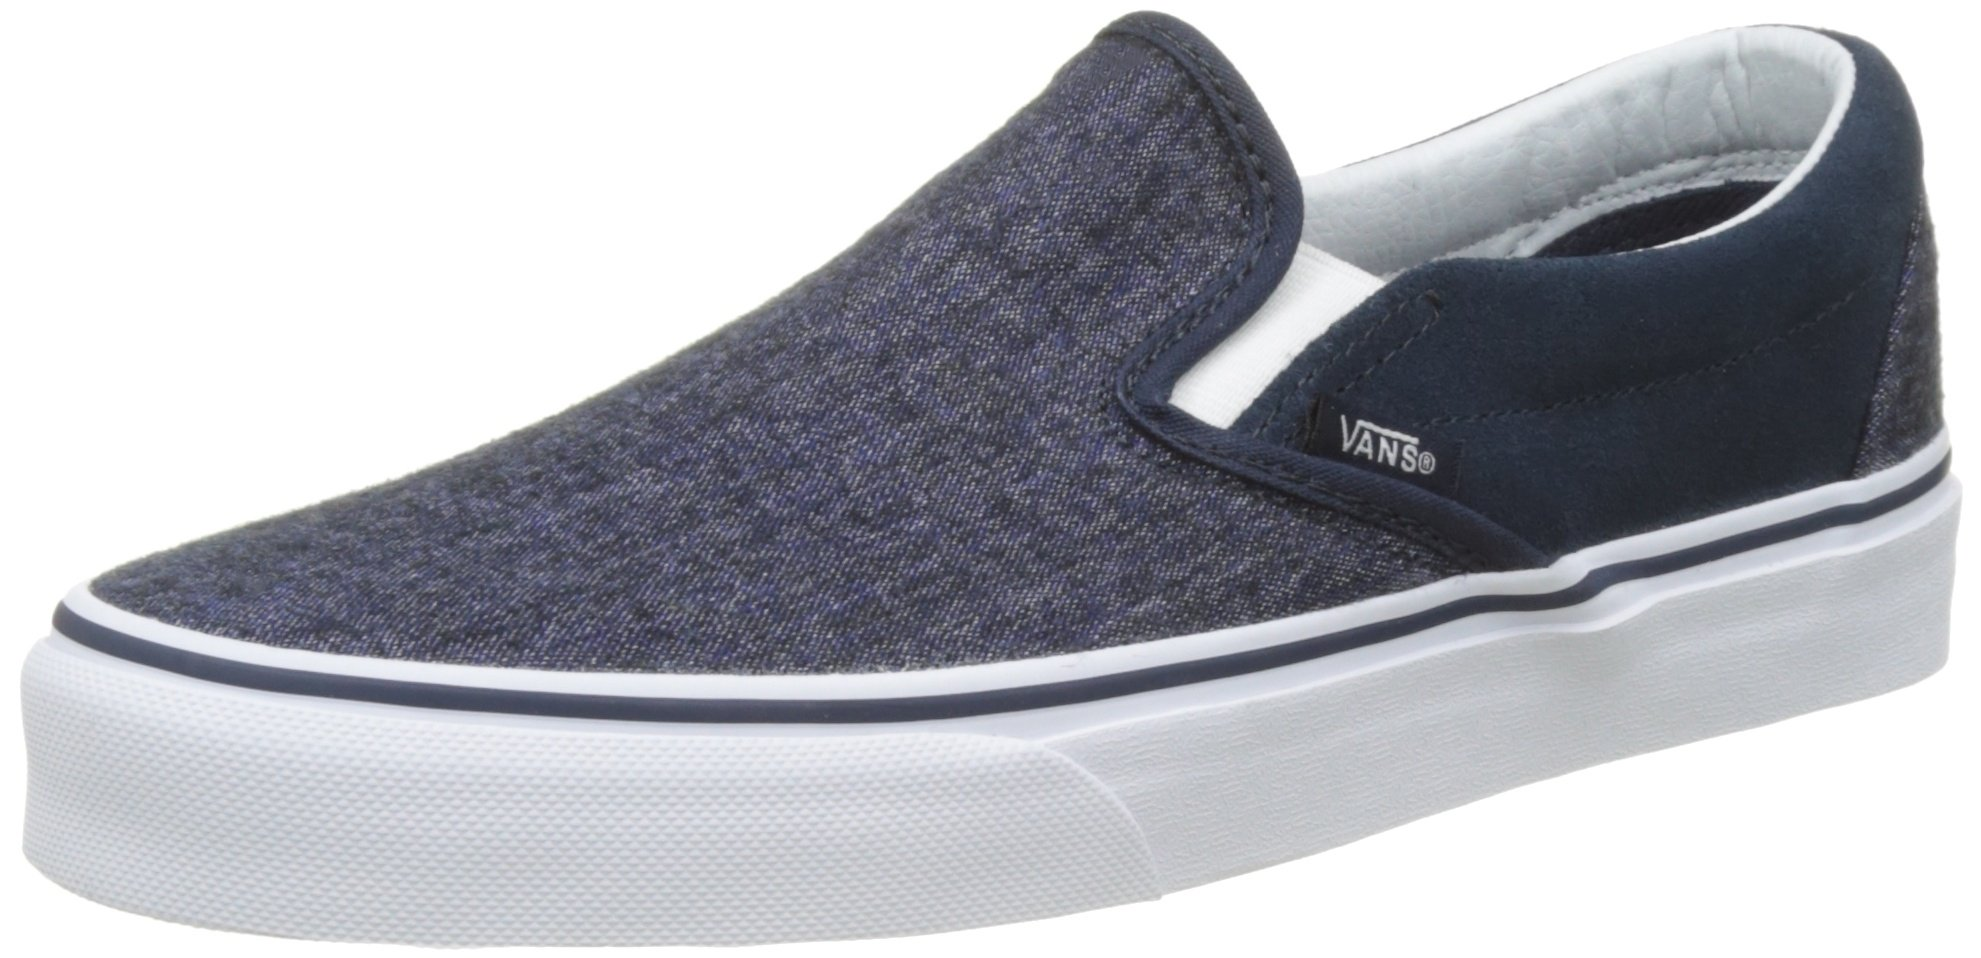 9352f7e47b Galleon - Vans Men s Classic Slip On (Suede   Suiting) Skateboarding Shoes  (12 B(M) US Women   10.5 D(M) US Men